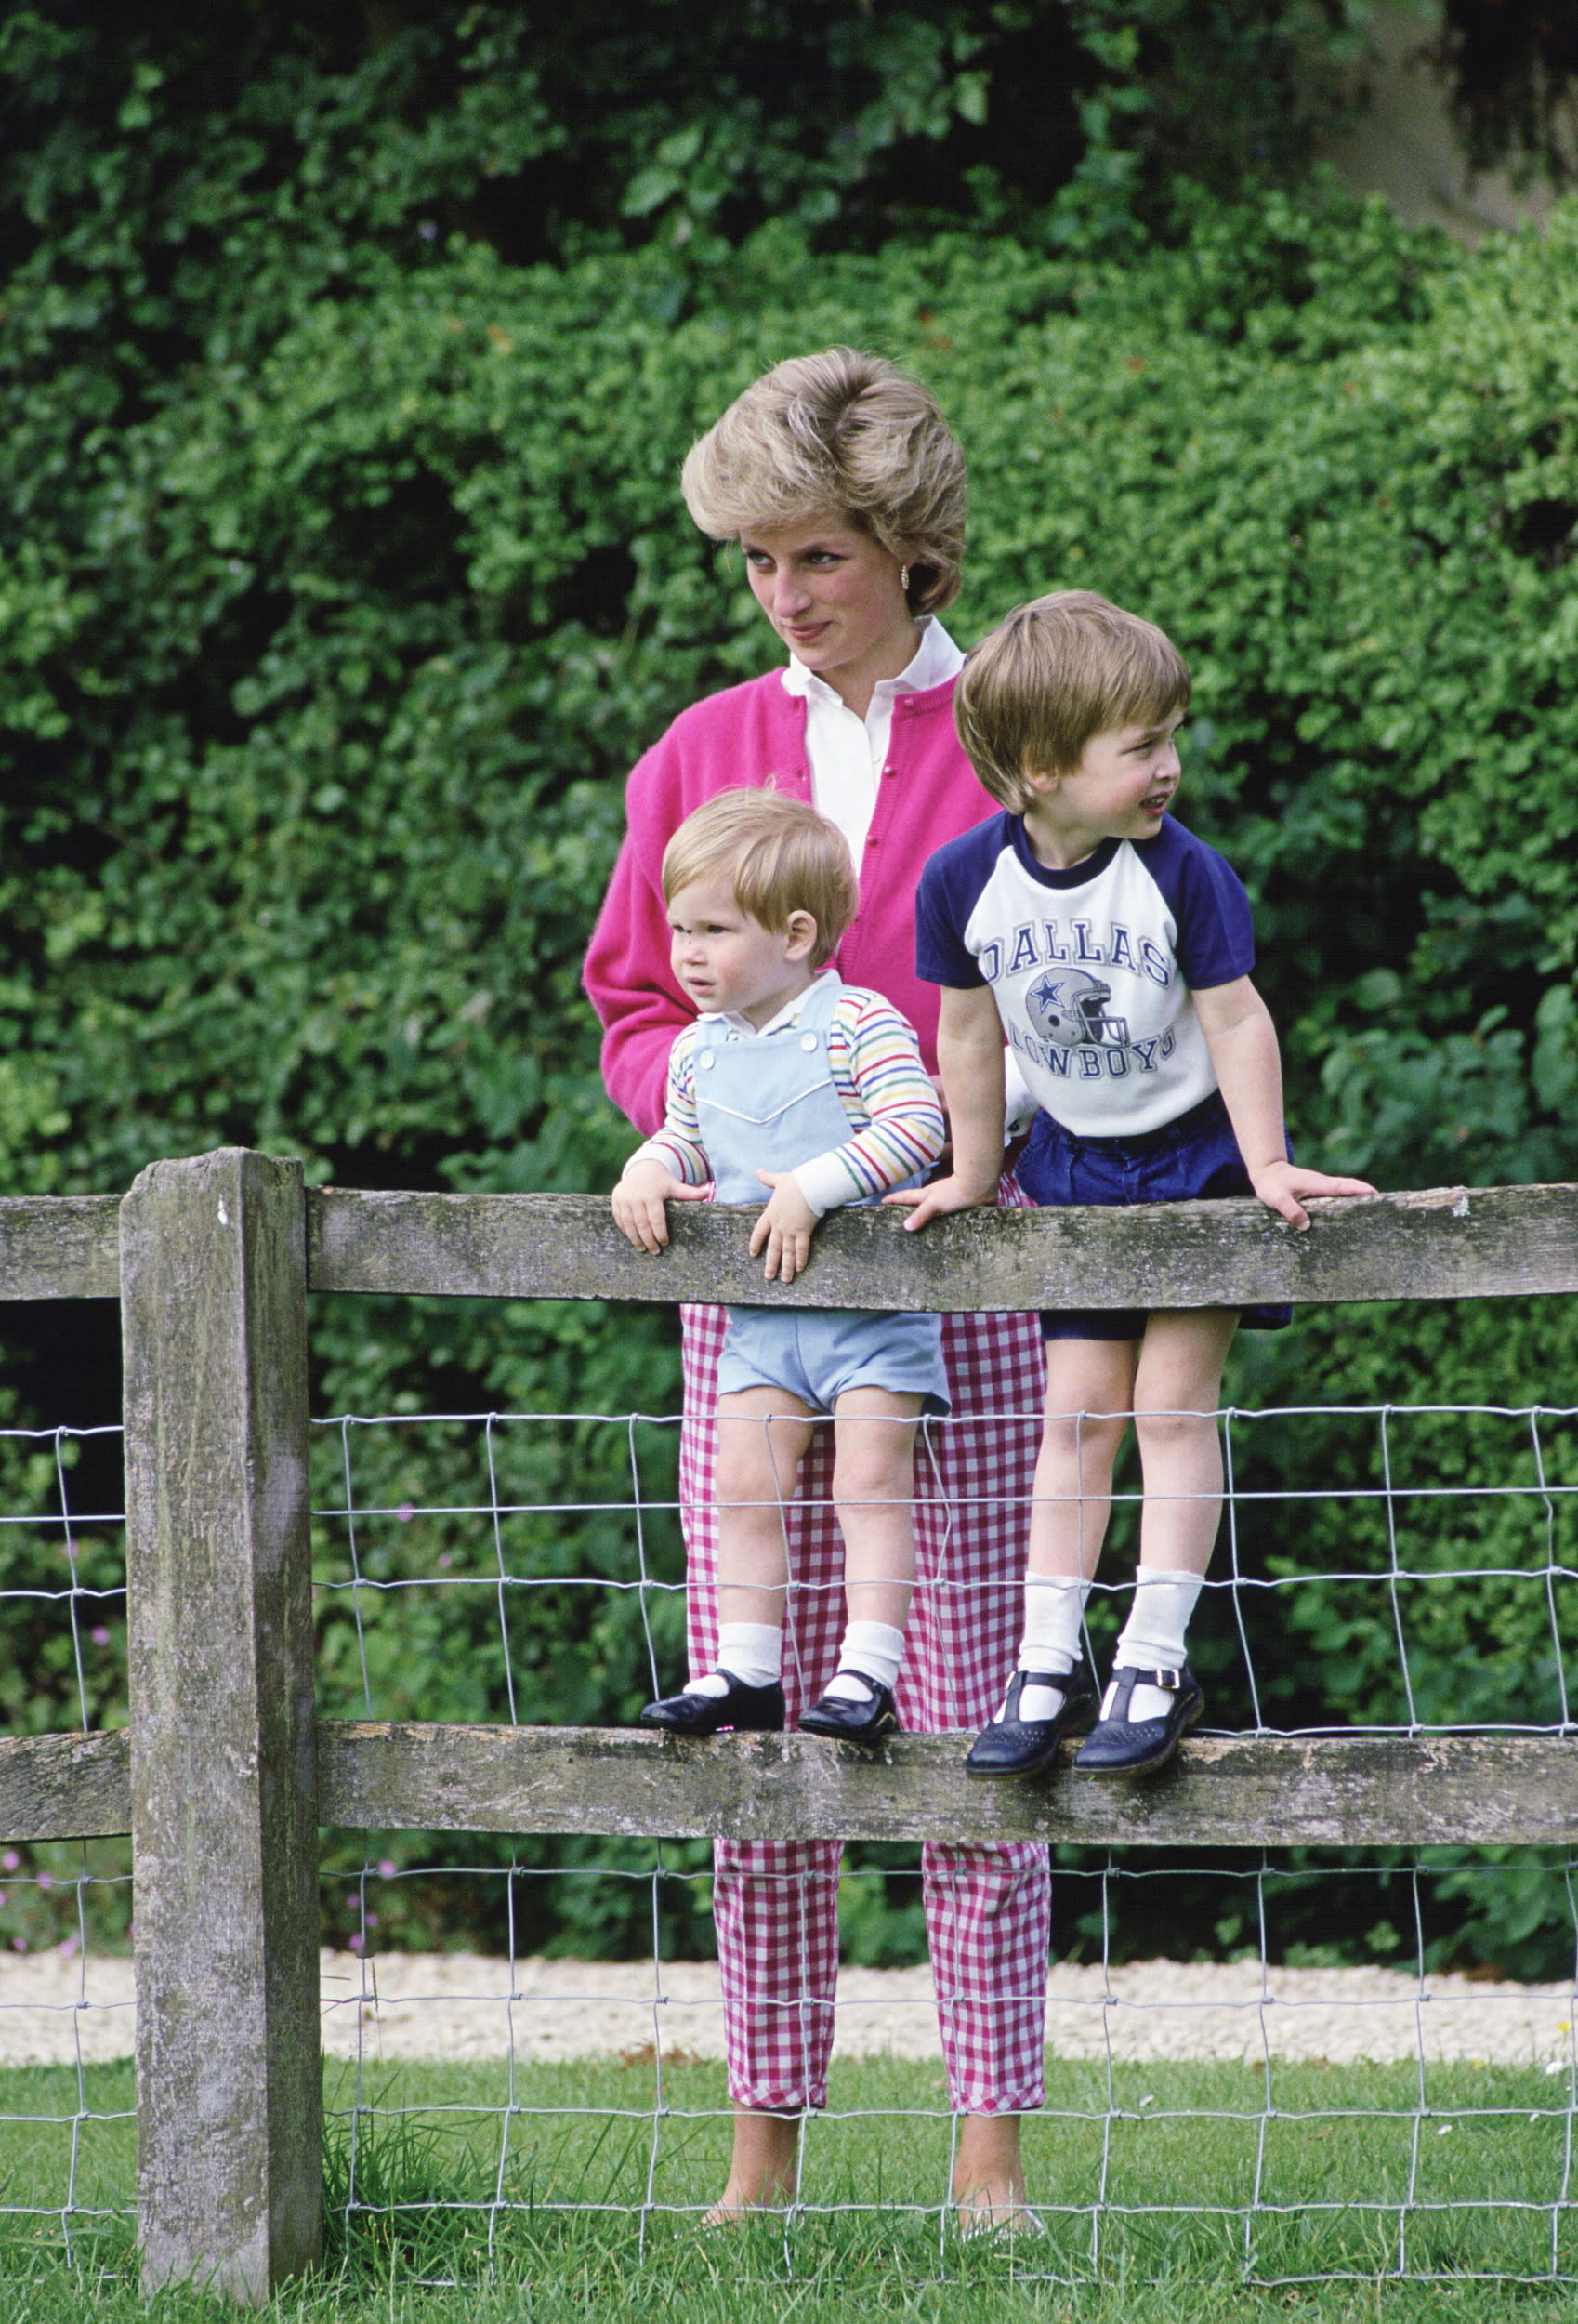 TETBURY, UNITED KINGDOM - JULY 18:  Diana, Princess Of Wales With Her Sons, William And Harry In The Grounds Of Highgrove In Tetbry, Gloucestershire  (Photo by Tim Graham/Getty Images)